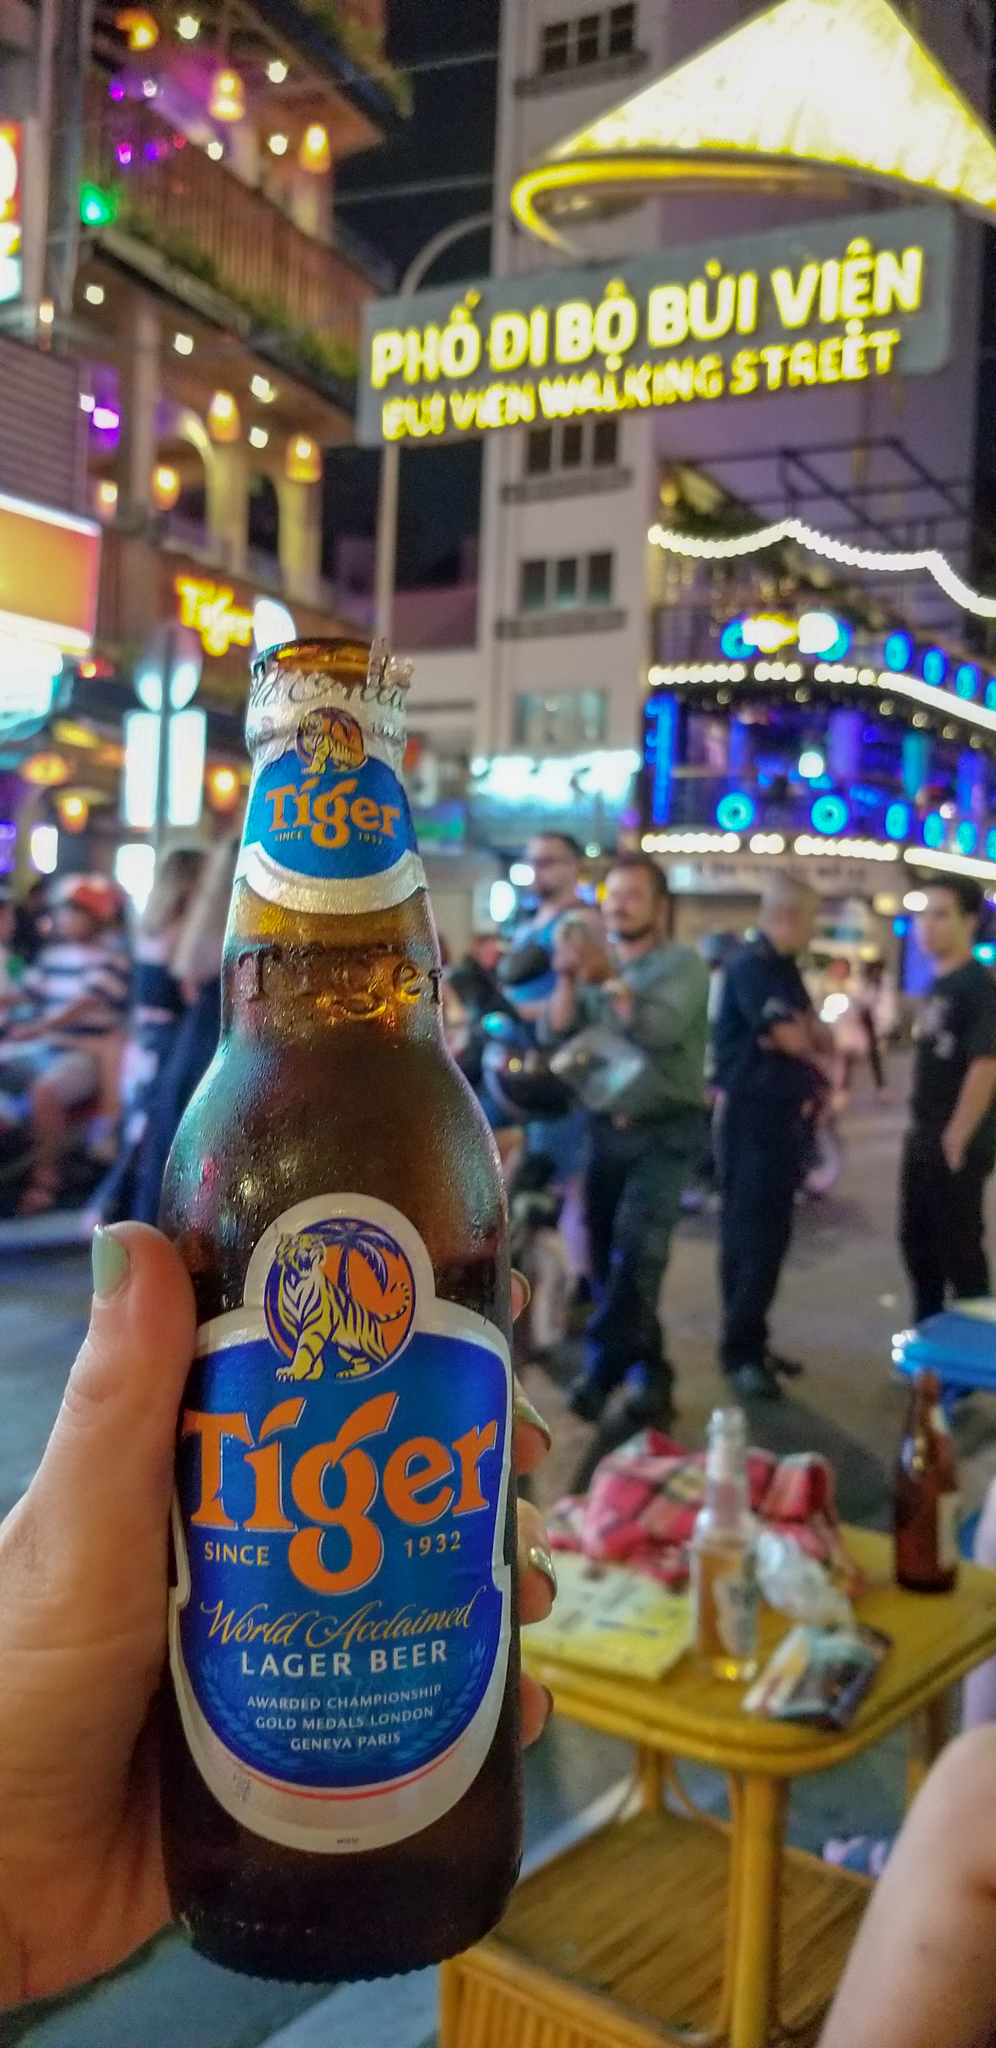 Uprooted-Traveler-48-hour-itinerary-Ho-Chi-Minh-bui-vien-street.jpg